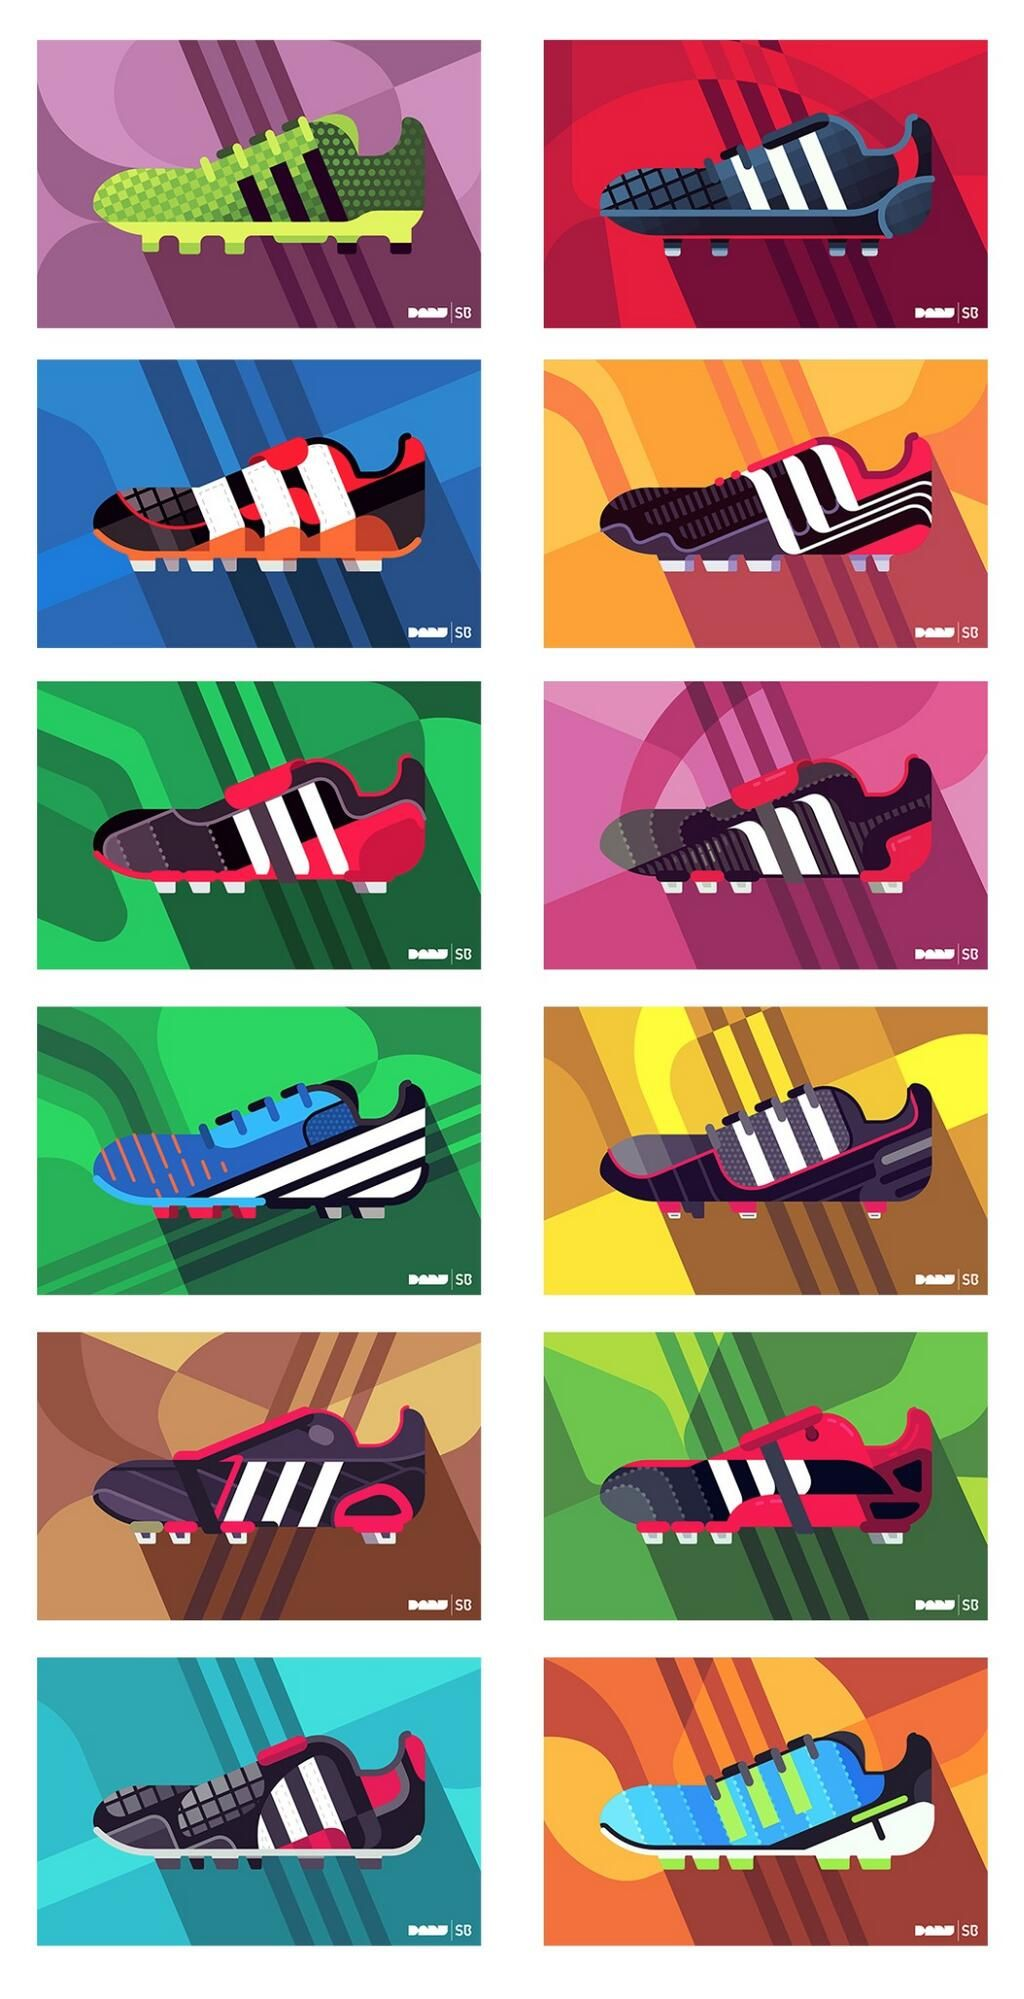 finest selection 84408 86161 Twitter  danielnyari I illustrated the Adidas Predator .